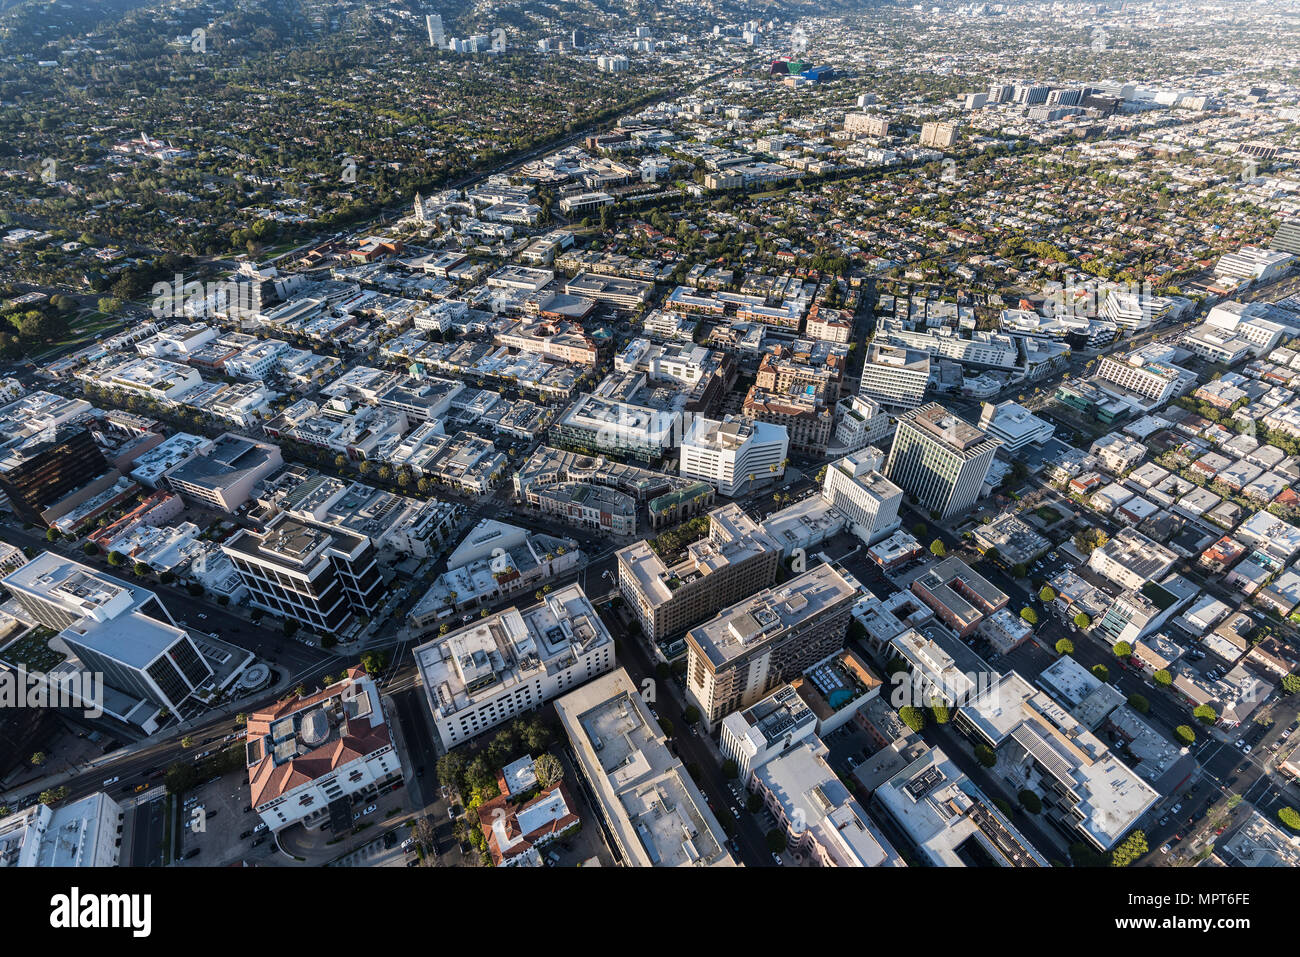 Aerial view of Wilshire Bl and Rodeo Dr business district in downtown Beverly Hills near West Hollywood and Los Angeles, California. - Stock Image